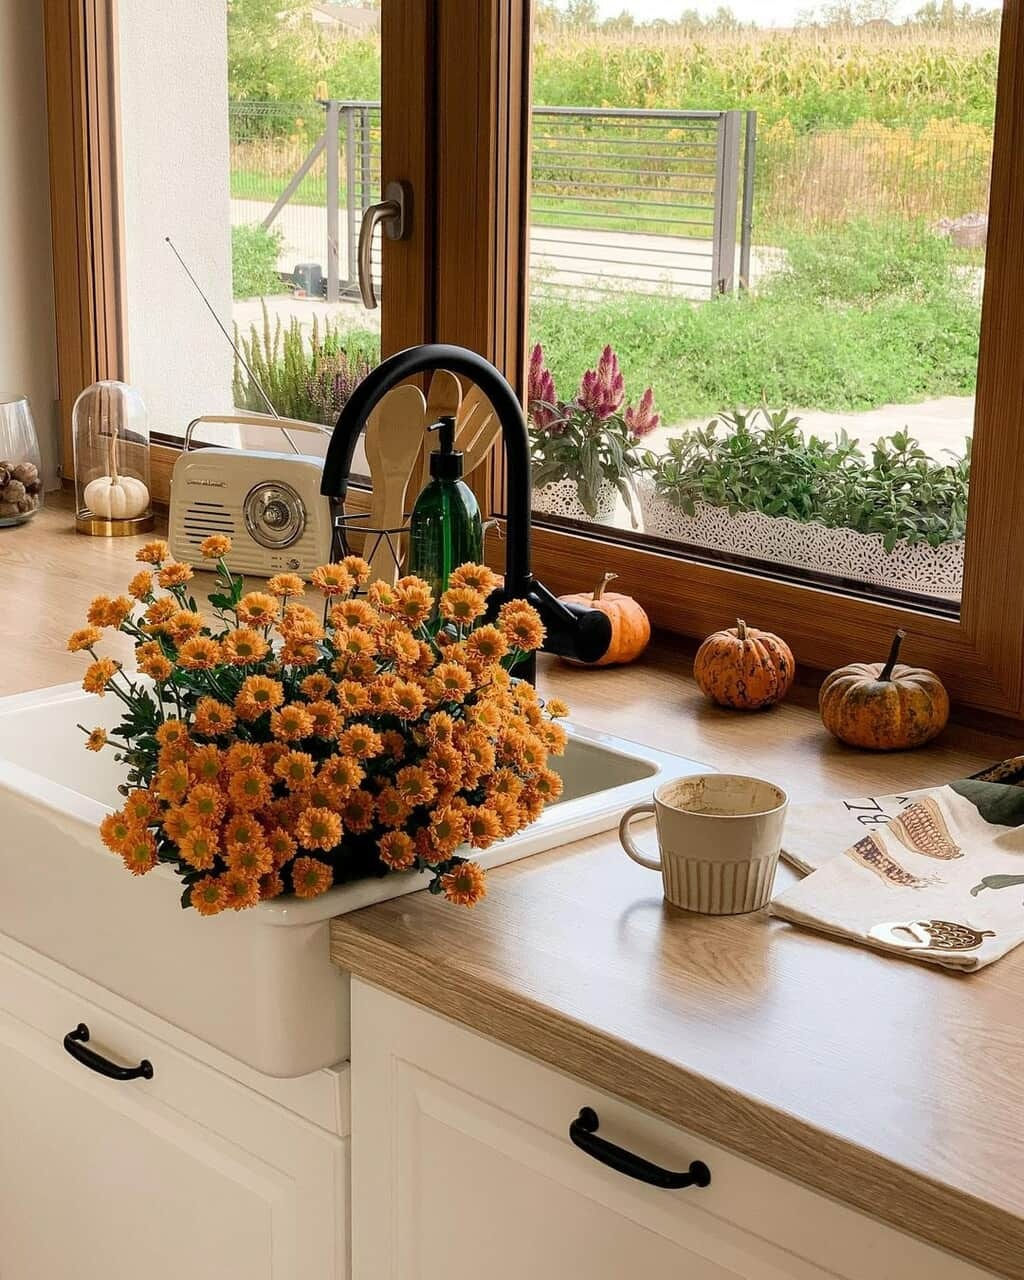 #autumn#fall#spooky#chilly#halloween#flowers#mums#mug#pumpkins#sink#kitchen#decor#Aesthetic #weheartit.com